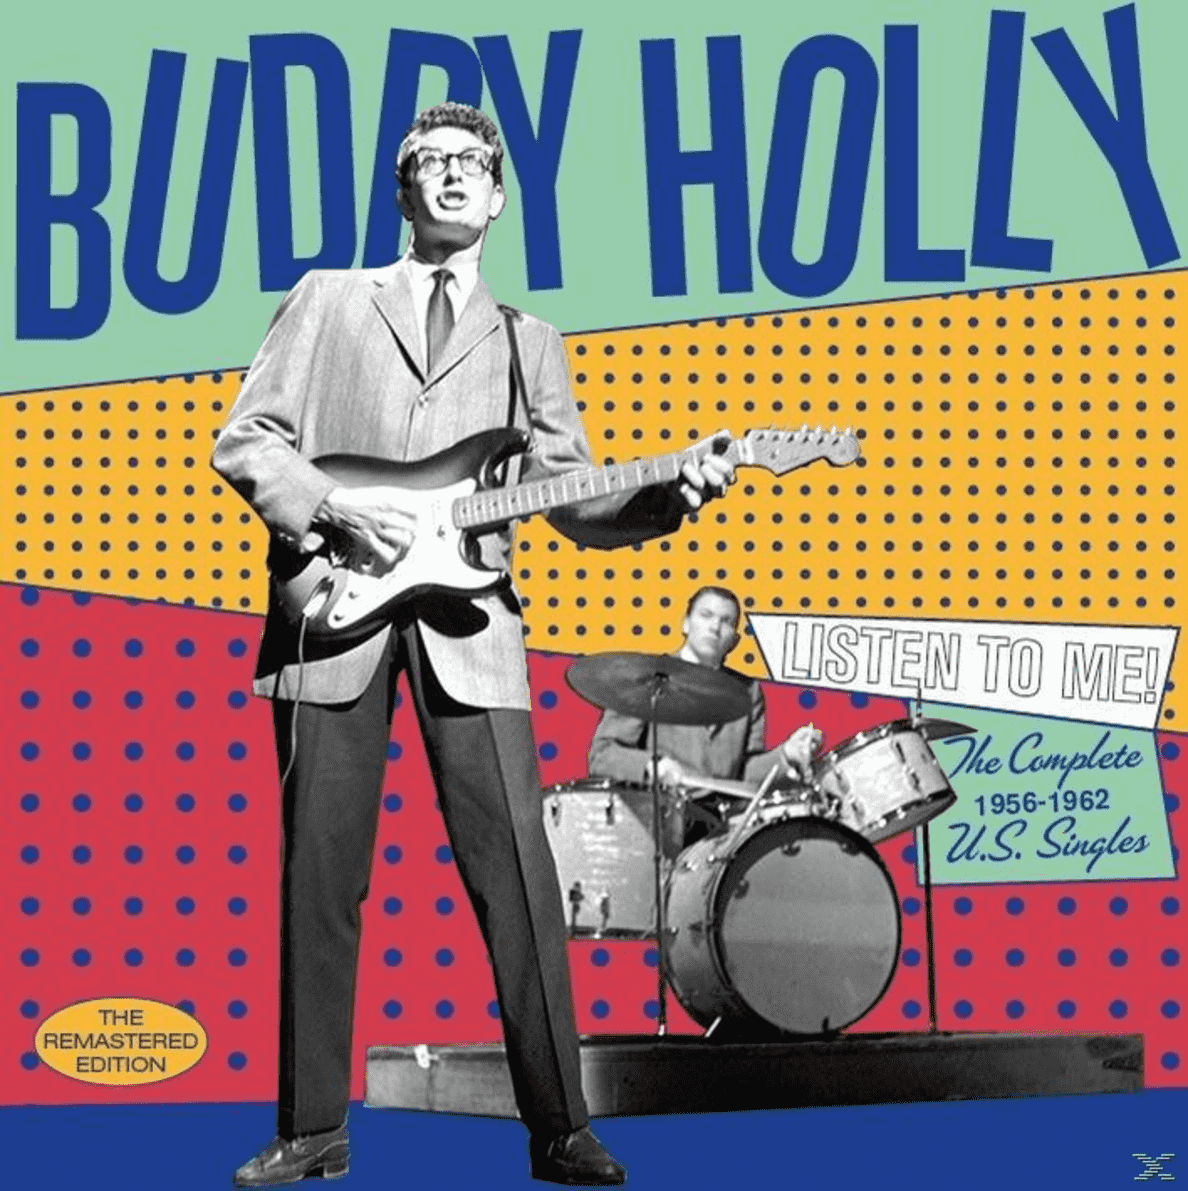 Listen To Me-The Complete 1956-1962 U.S.Singles Buddy Holly auf CD